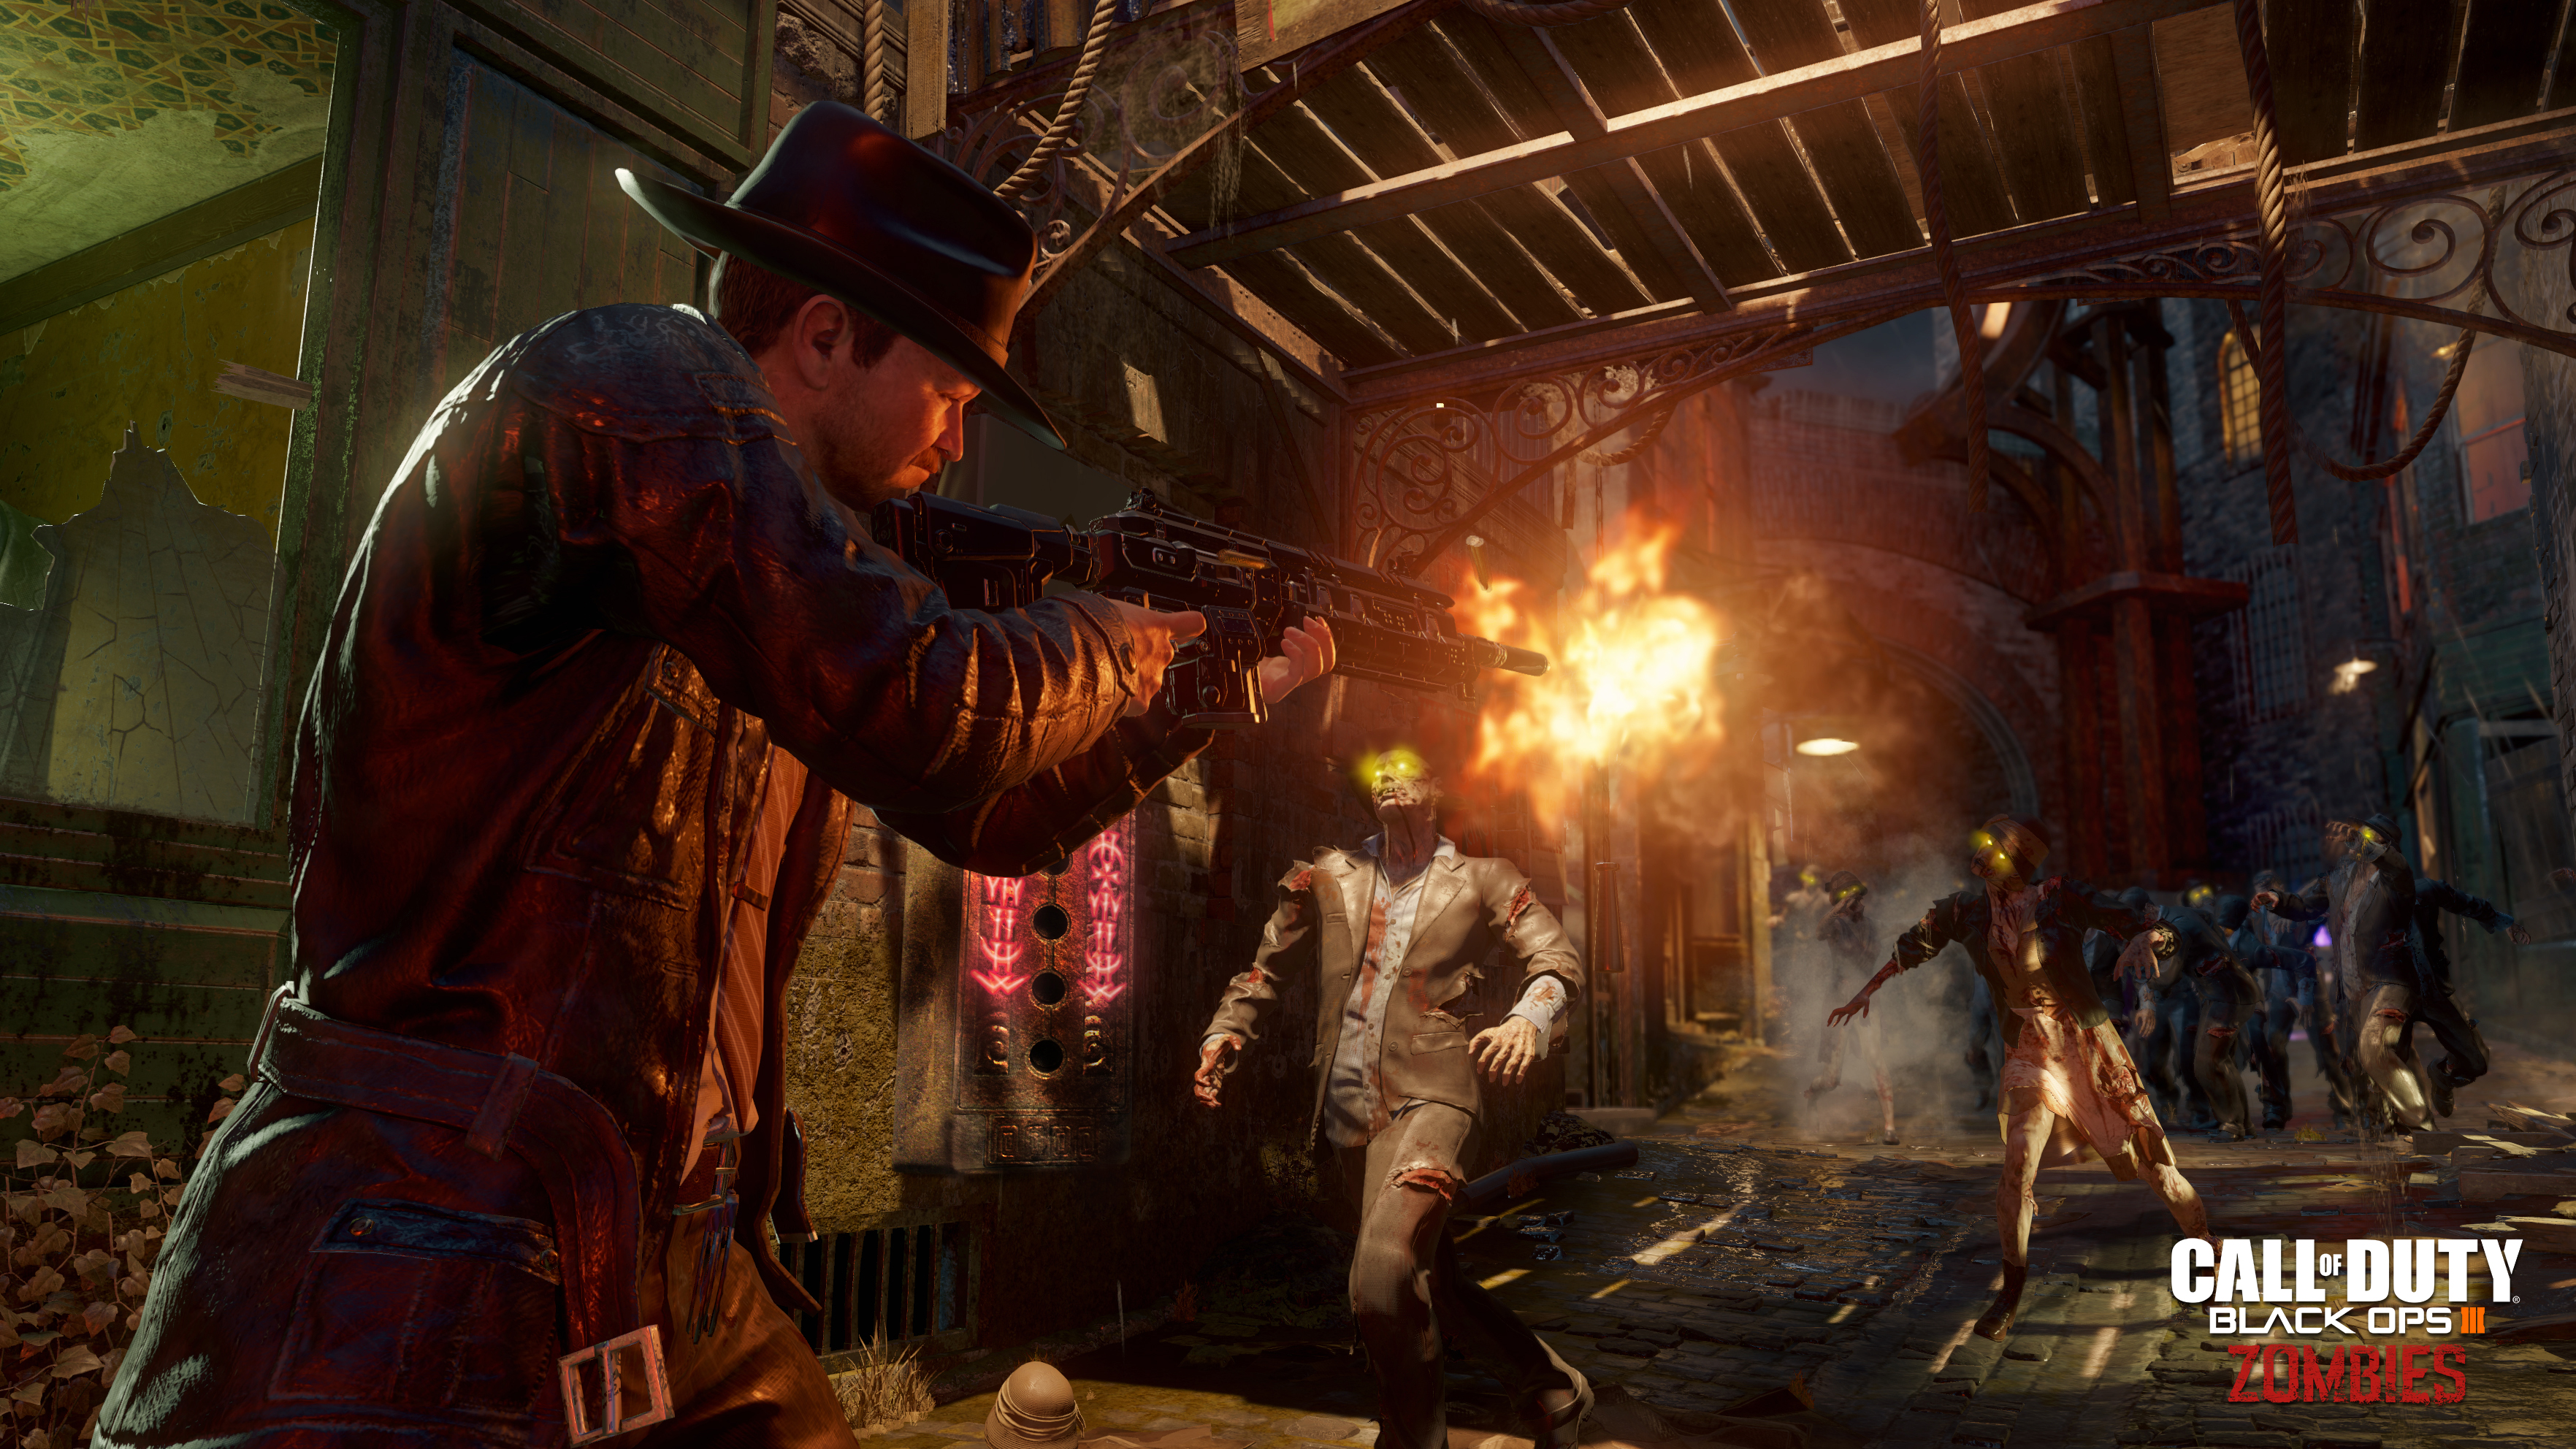 Call Of Duty Black Ops Iii Will Have A Zombie Mode Called